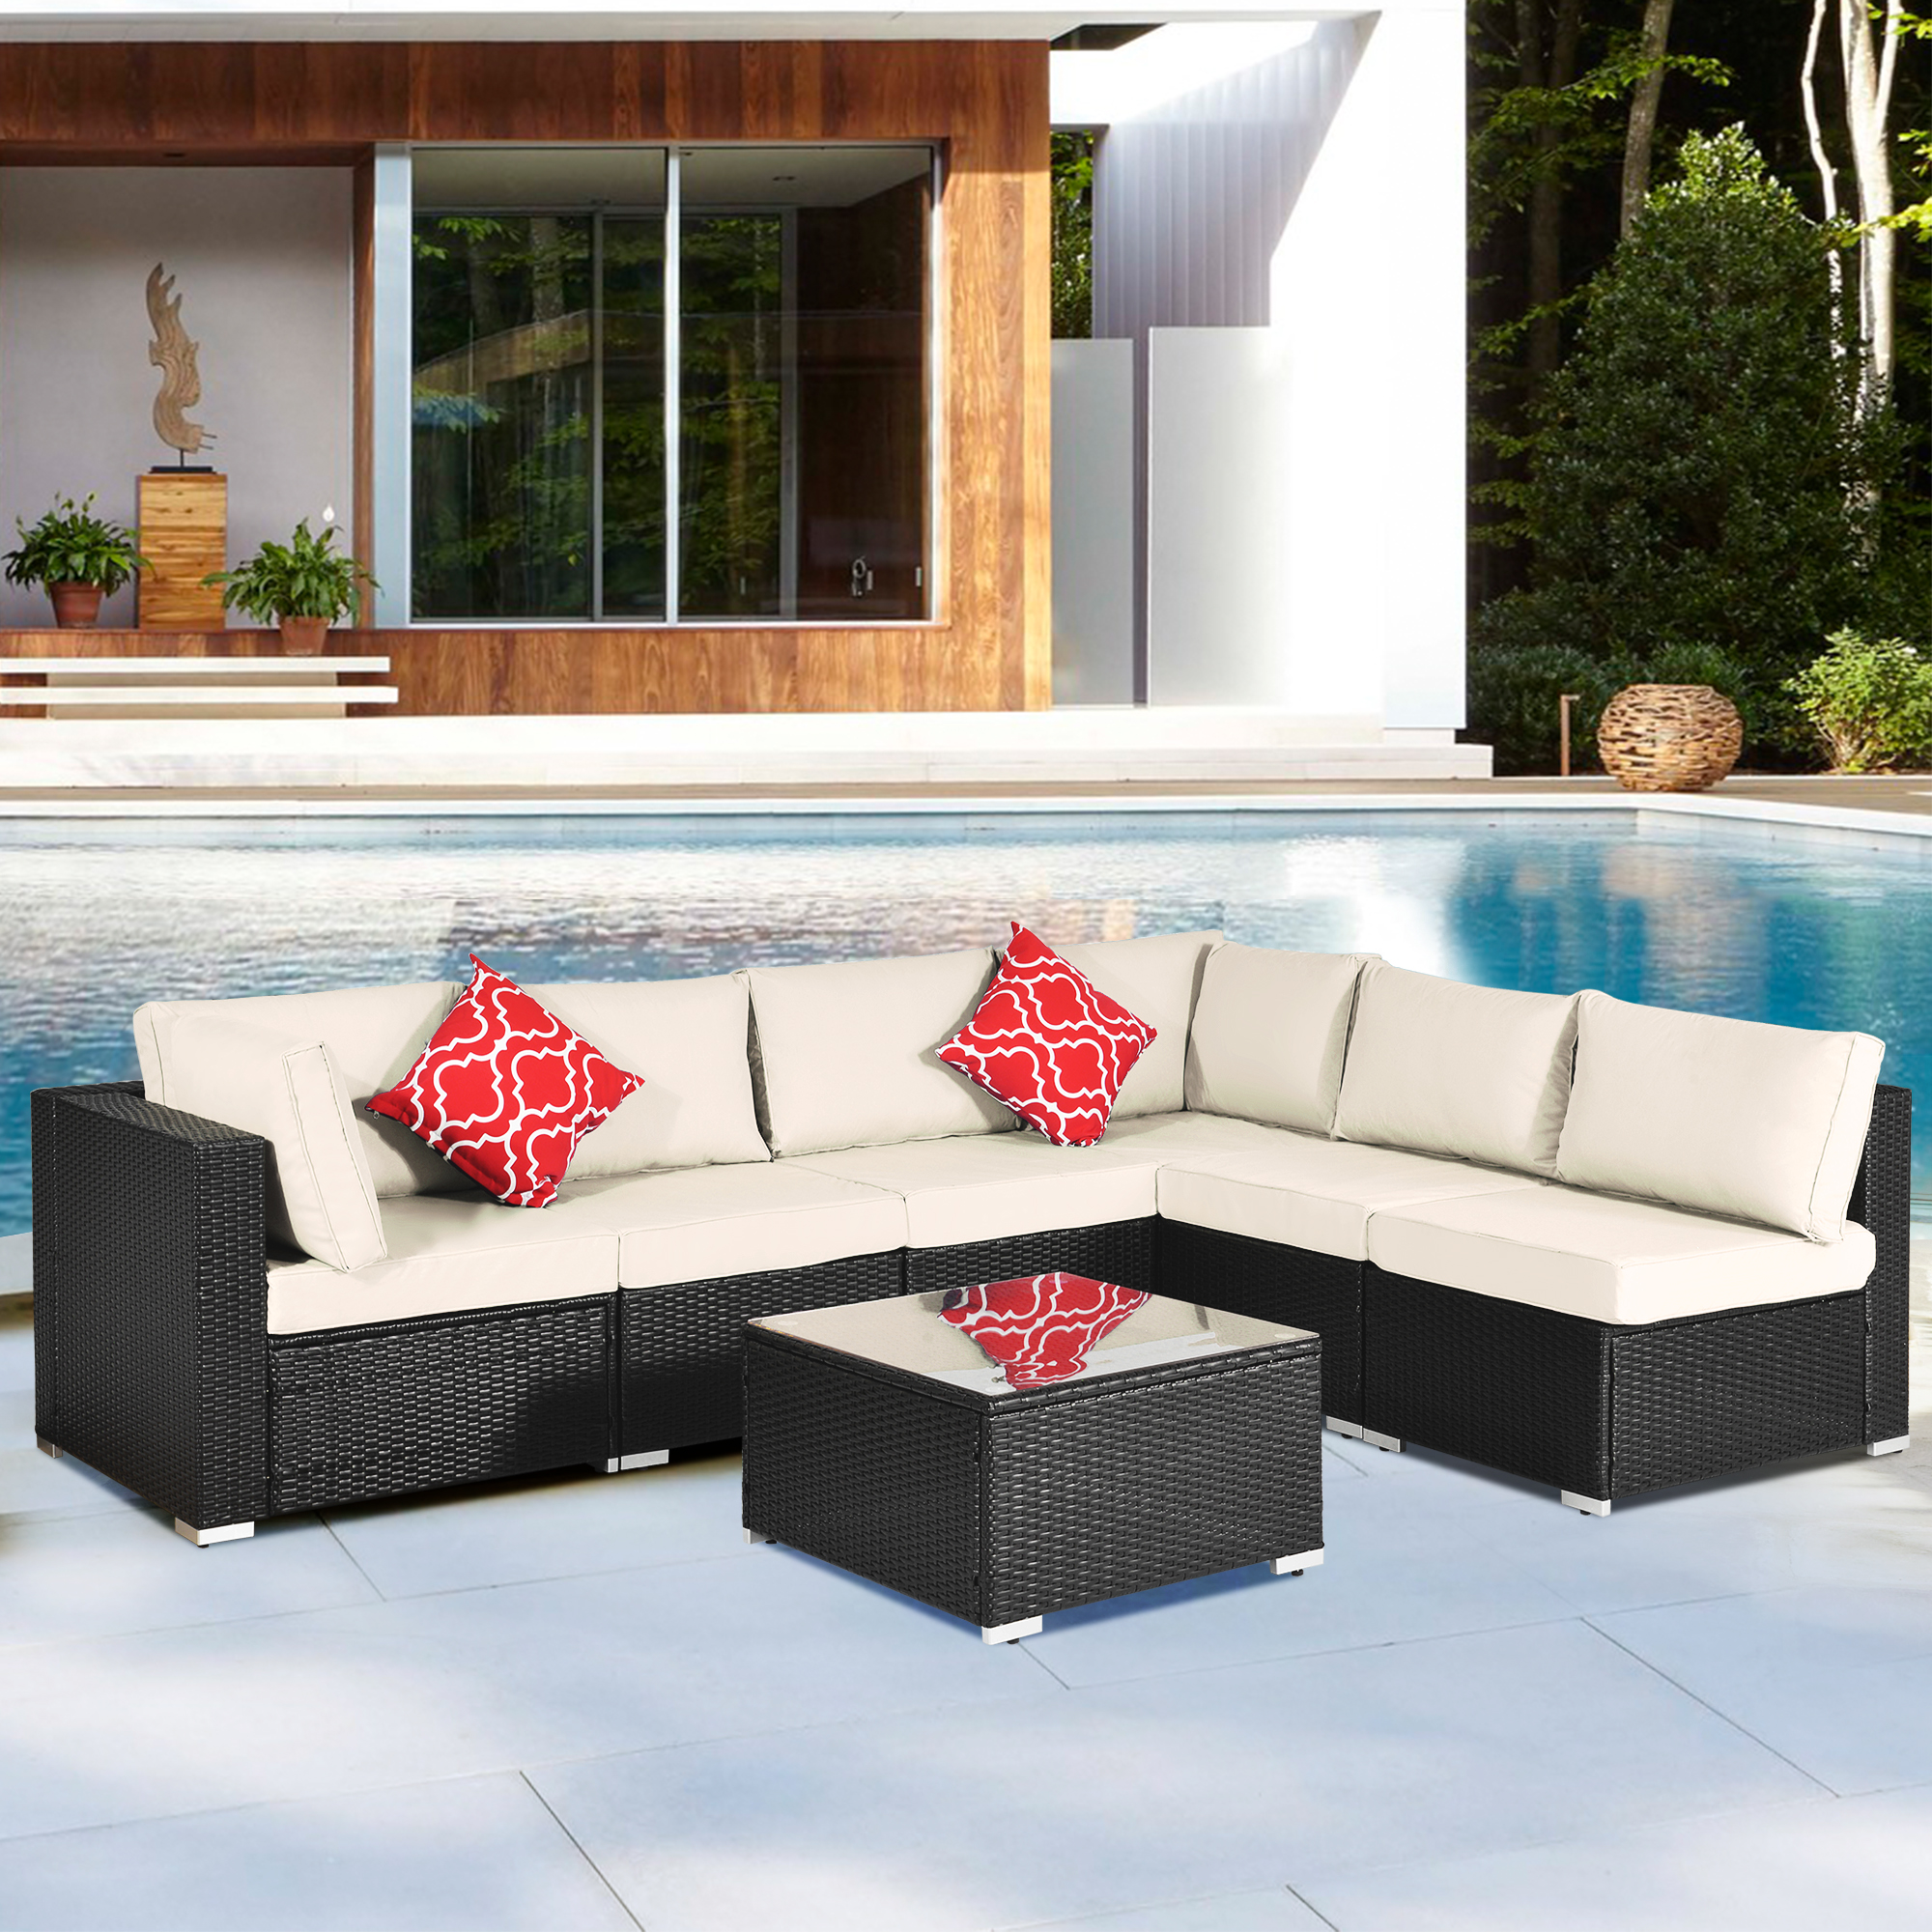 clearance 7 piece patio furniture set 6 rattan wicker chairs with glass dining table all weather outdoor conversation set with cushions for